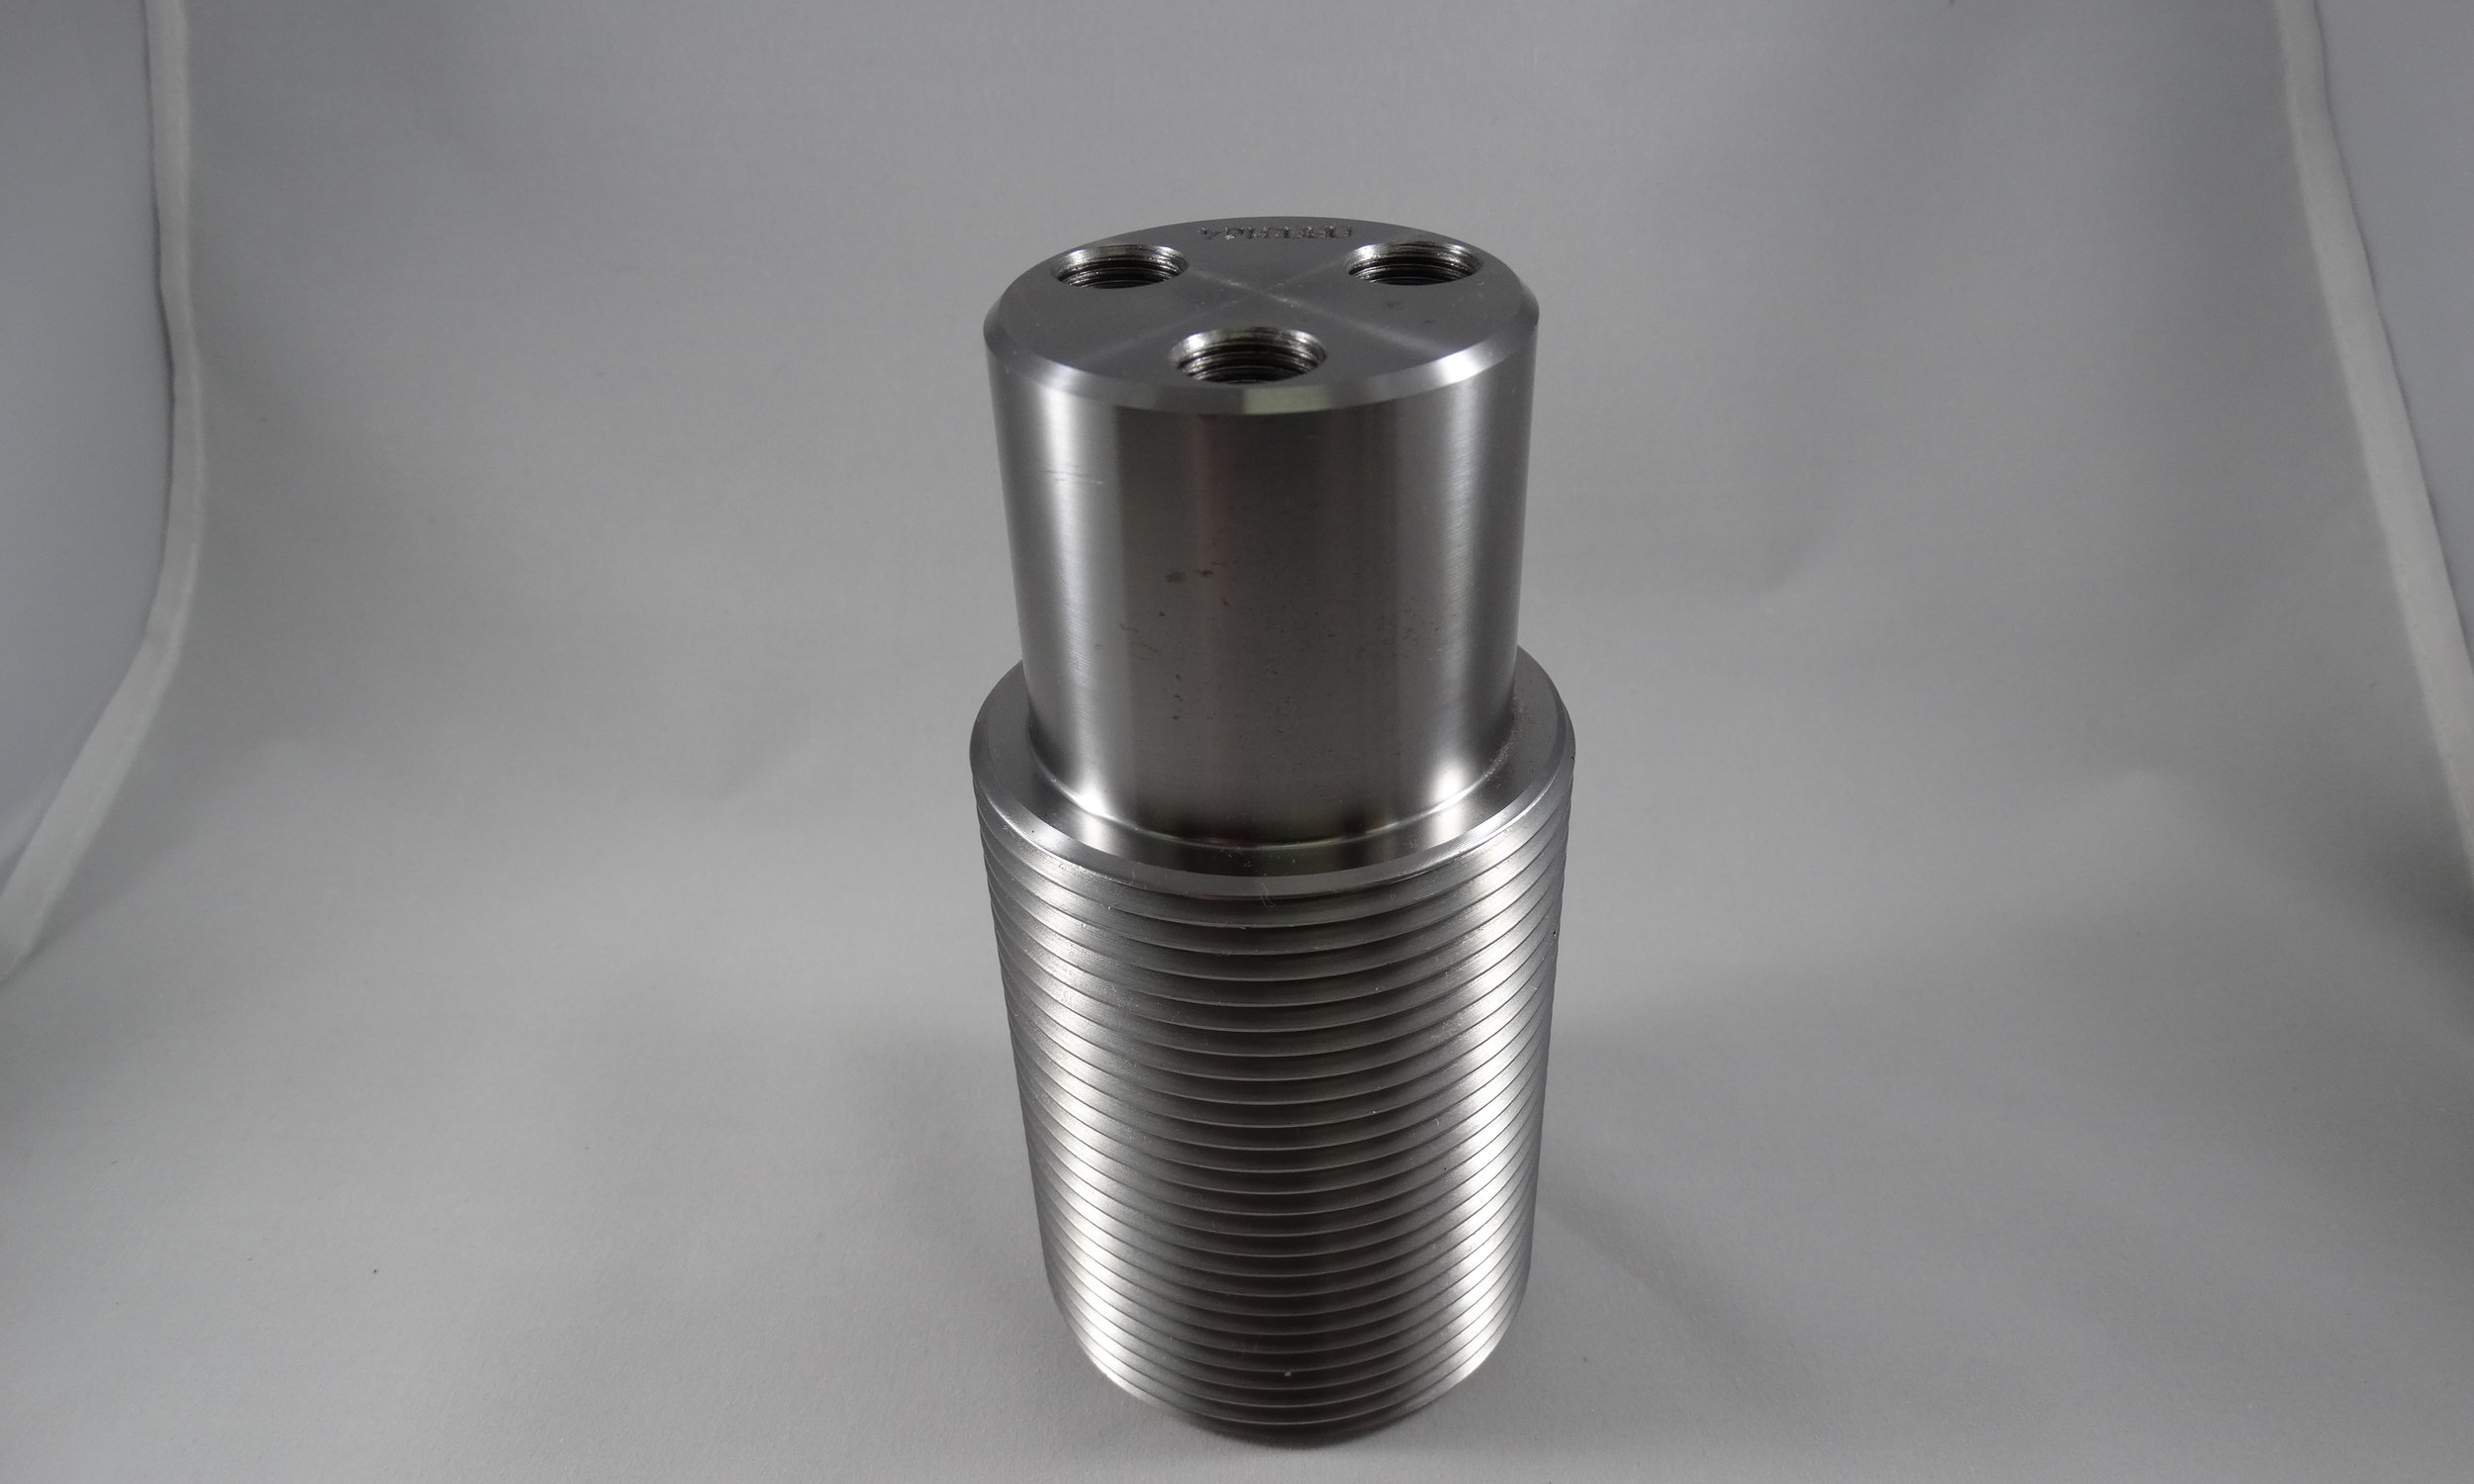 <p><strong>CNC Turning</strong><a href=/cnc-turning>Learn More →</a></p>